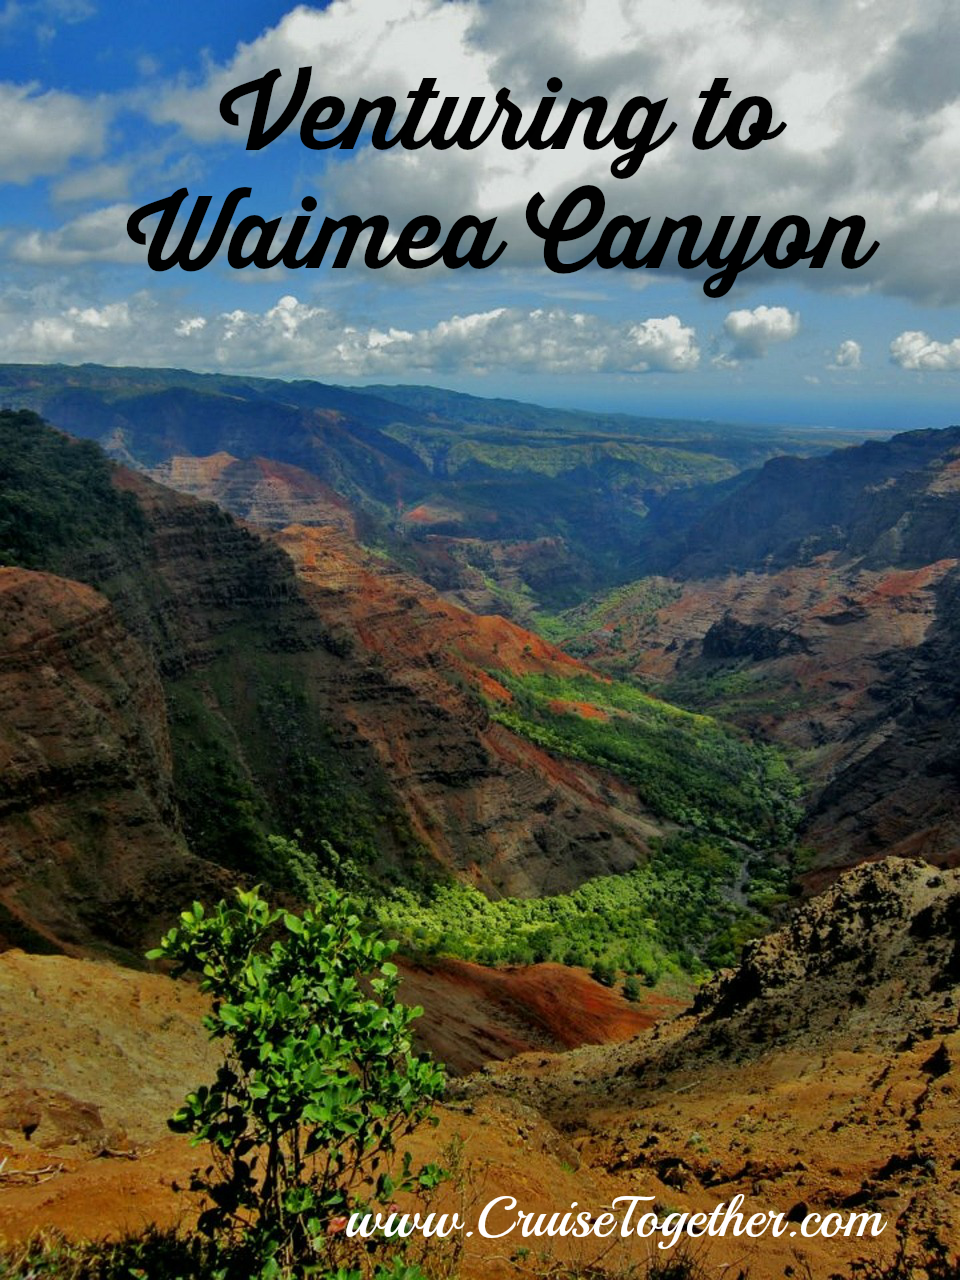 Waimea Canyon - our last stop in Hawaii. CruiseTogether.com